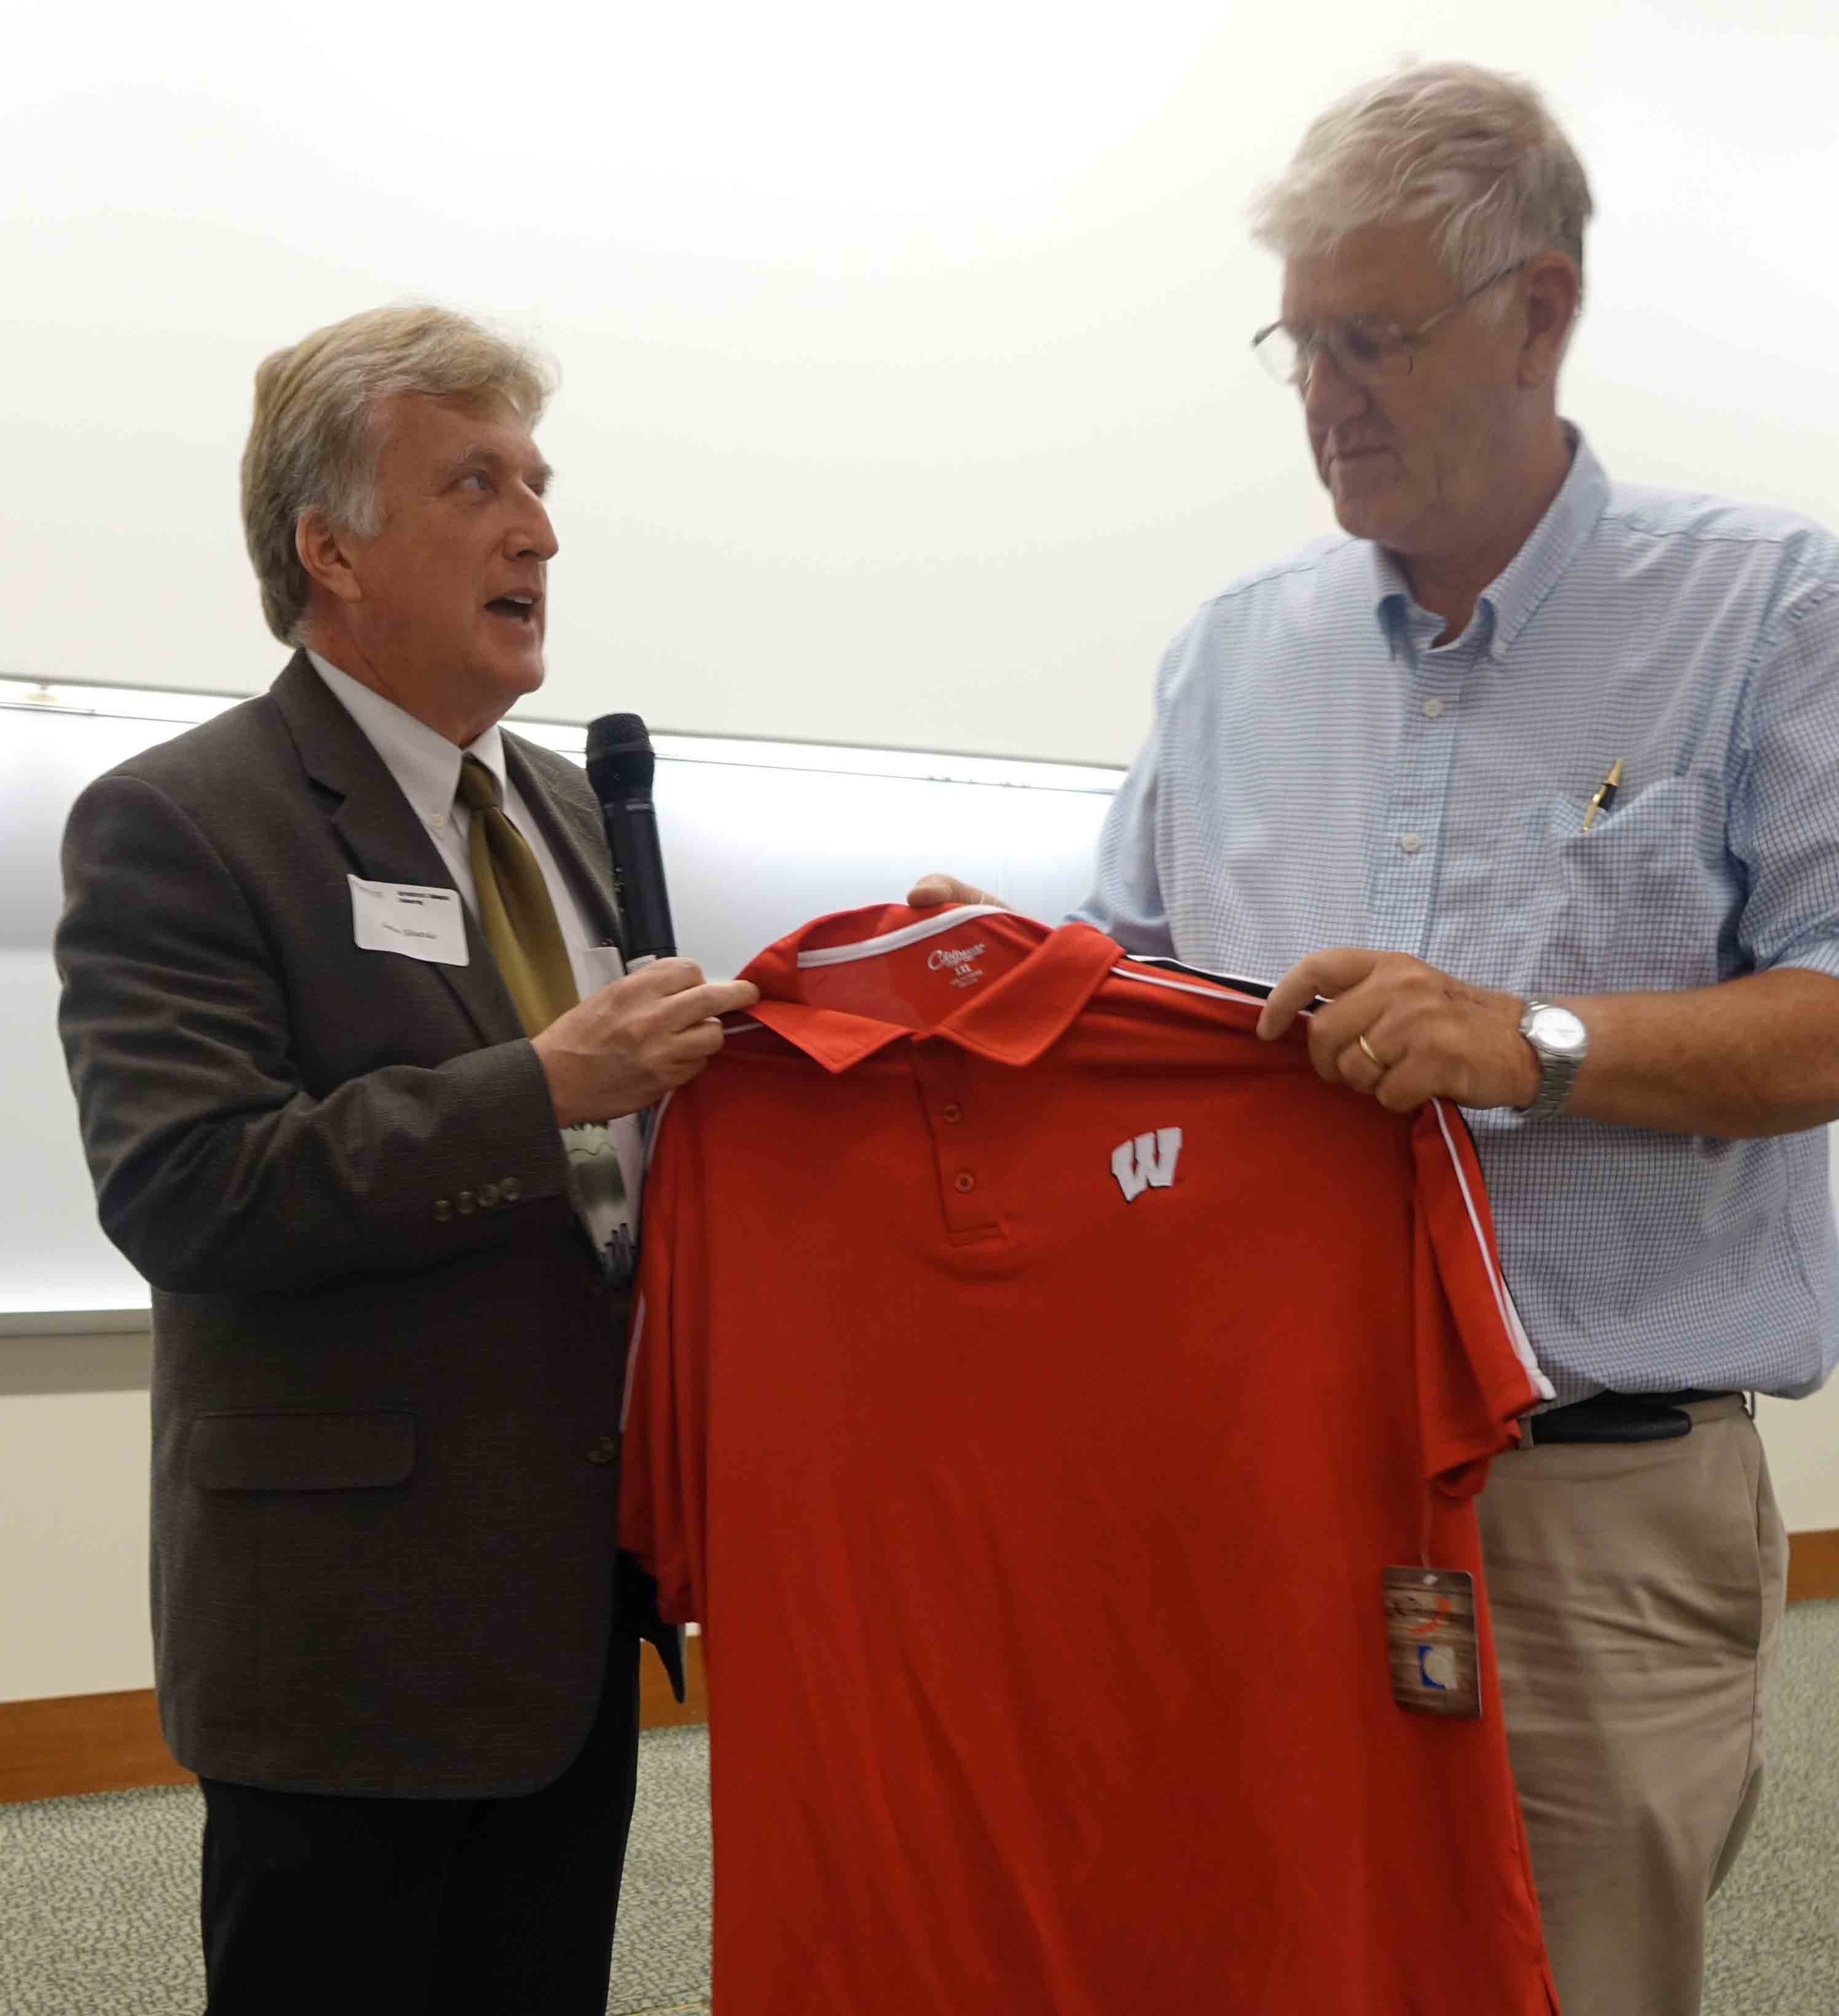 Dr. Shutske presents Professor Gary Krutz with a Wisconsin polo shirt